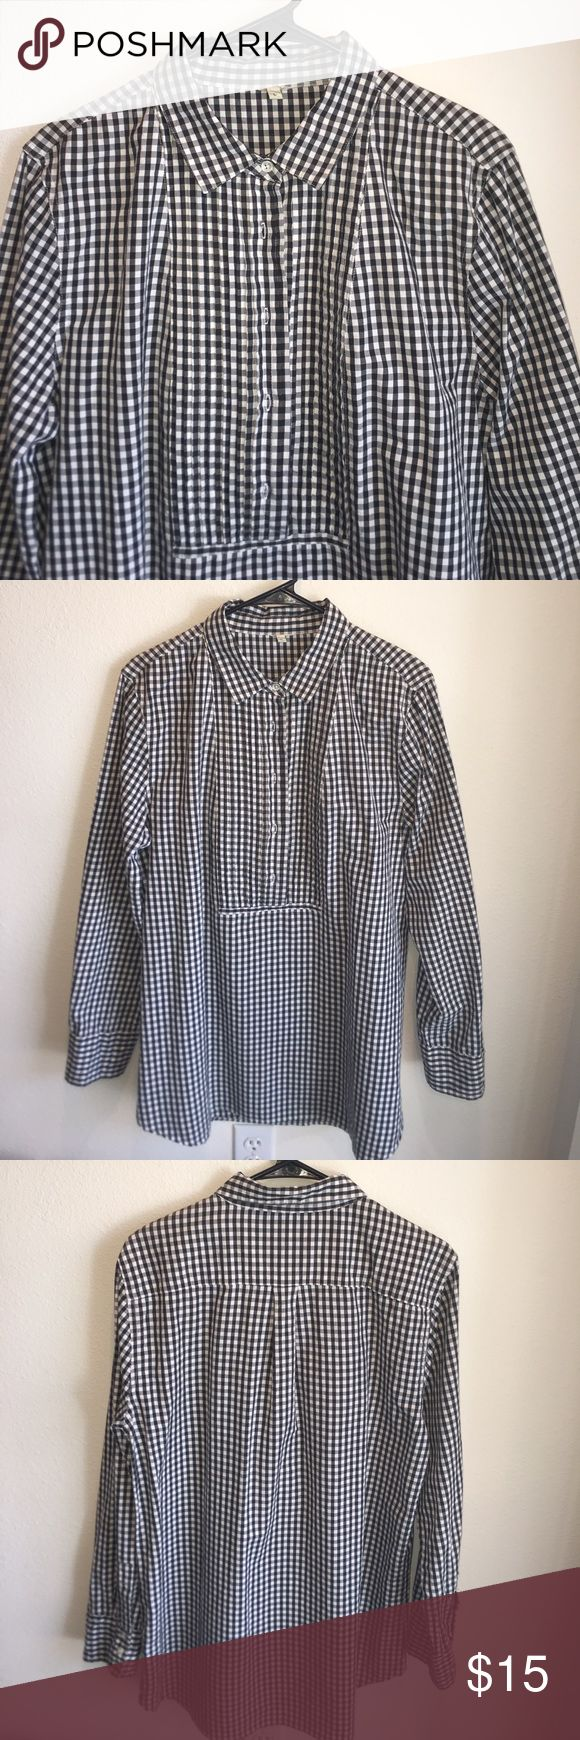 """J Crew Tuxedo Top in Gingham Tunic top, grey and white gingham top. Has a pleated bib in front, shown on last pic. High low hem. Measurements are 21"""" pit to pit, shoulder to hem 31"""" in front, 33"""" in back. Great for leggings and boots. EUC I ❤️ offers! j crew Tops Tunics"""